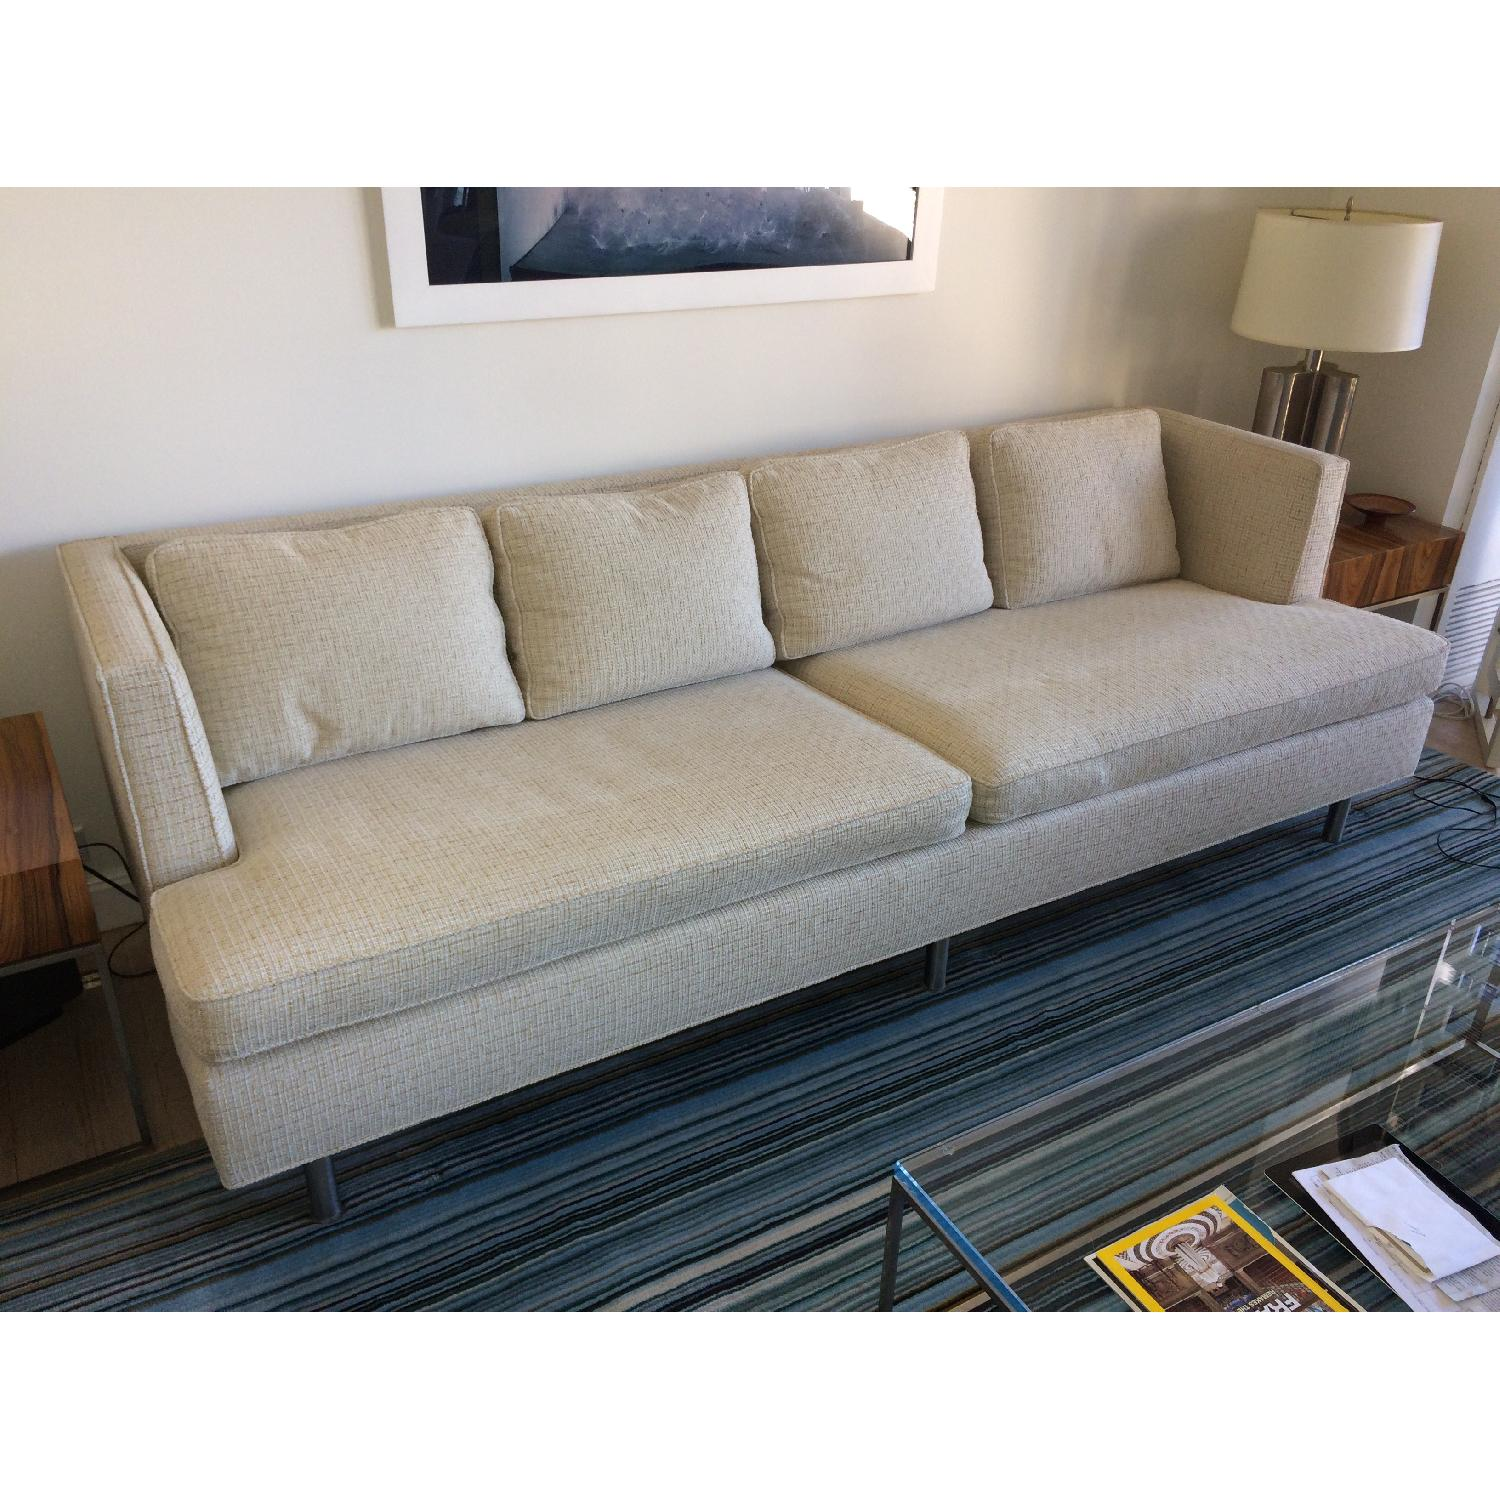 Lost City Arts Wormley Style Sofa - image-1